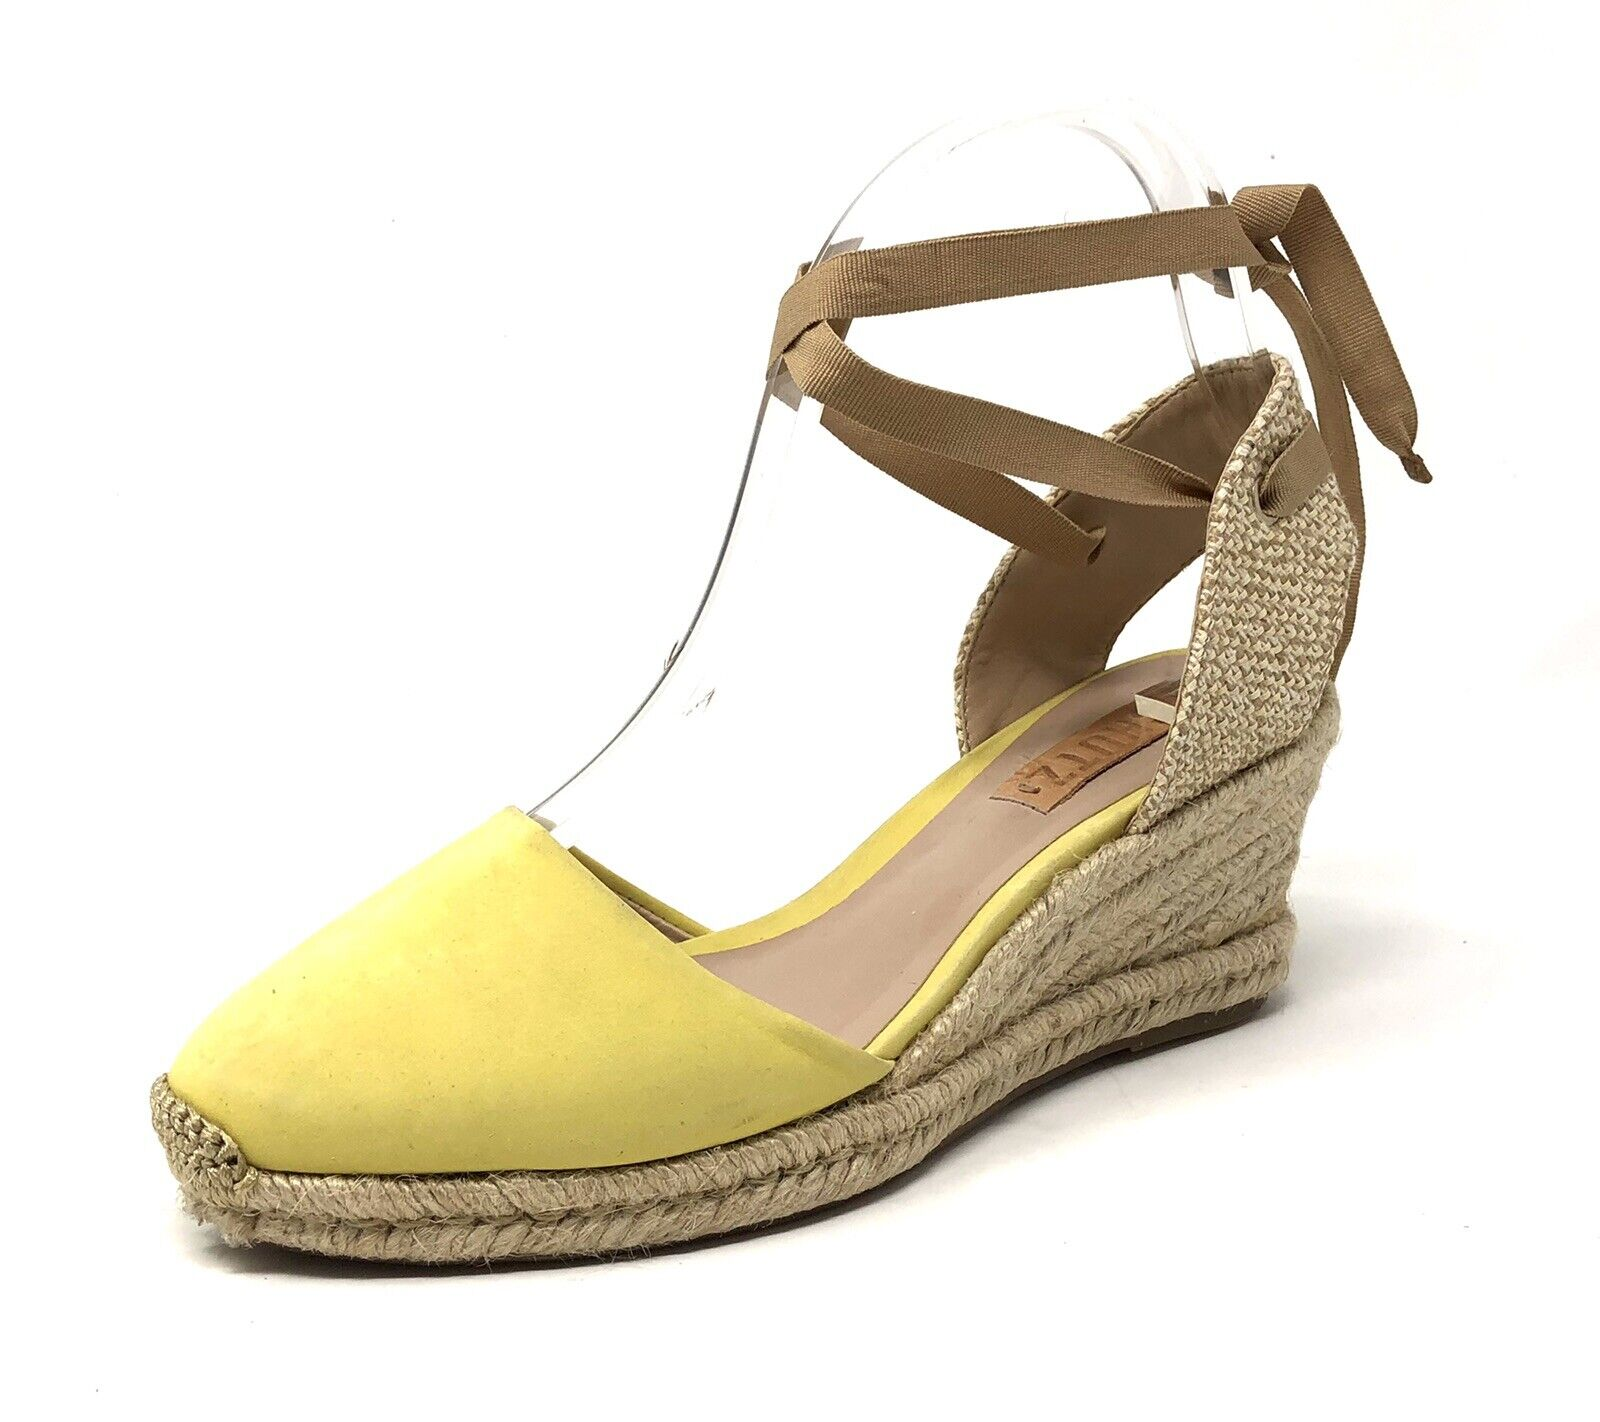 SCHUTZ Espadrille Yellow Tan Beige Nude Platform Wedge Lace Up  SZ 7